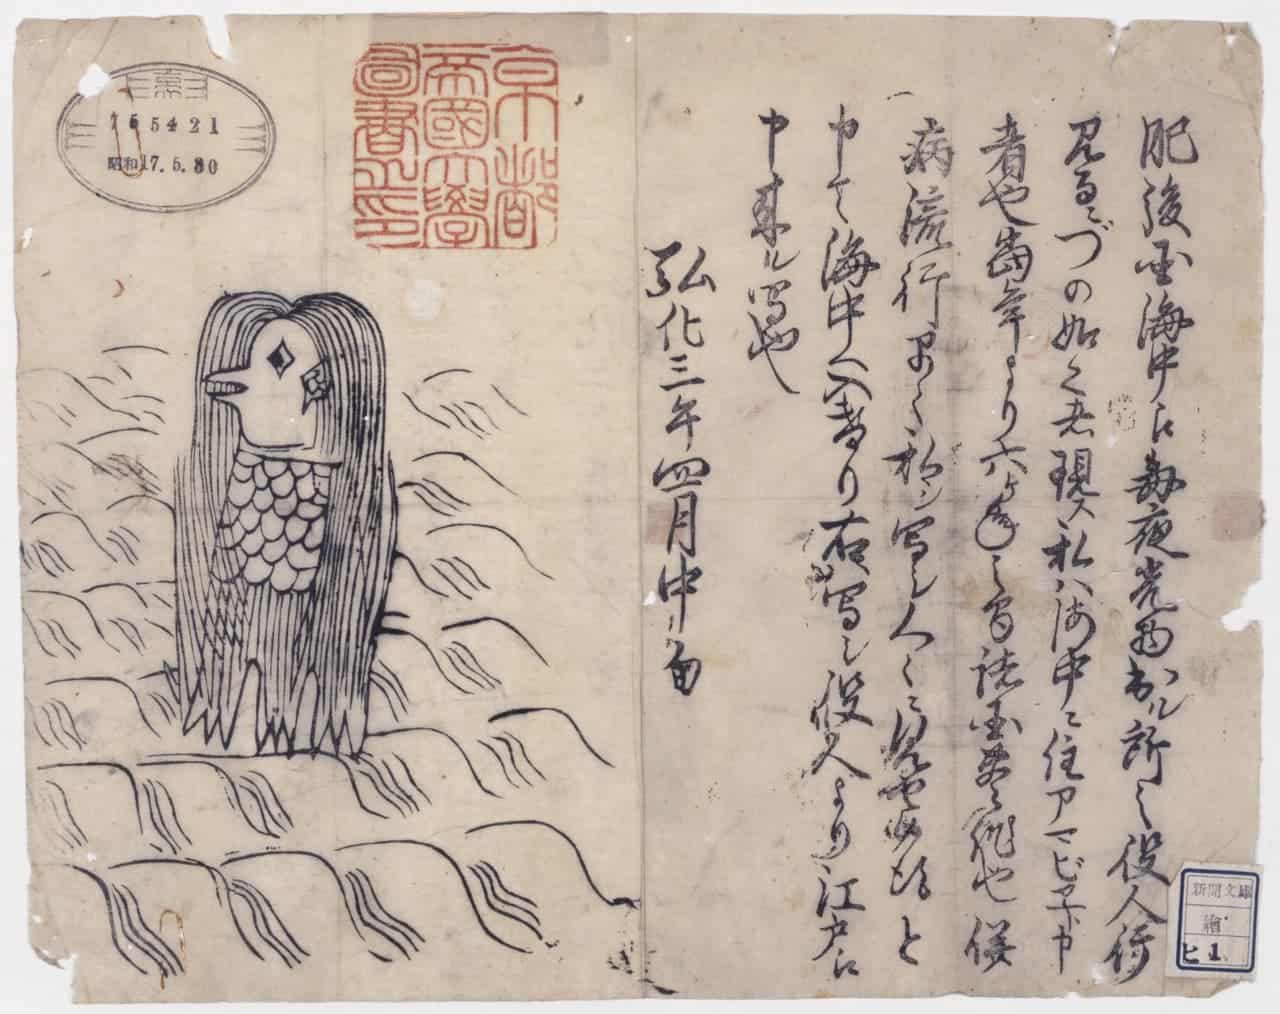 Japanese artists flood social media with folk art said to ward off epidemics